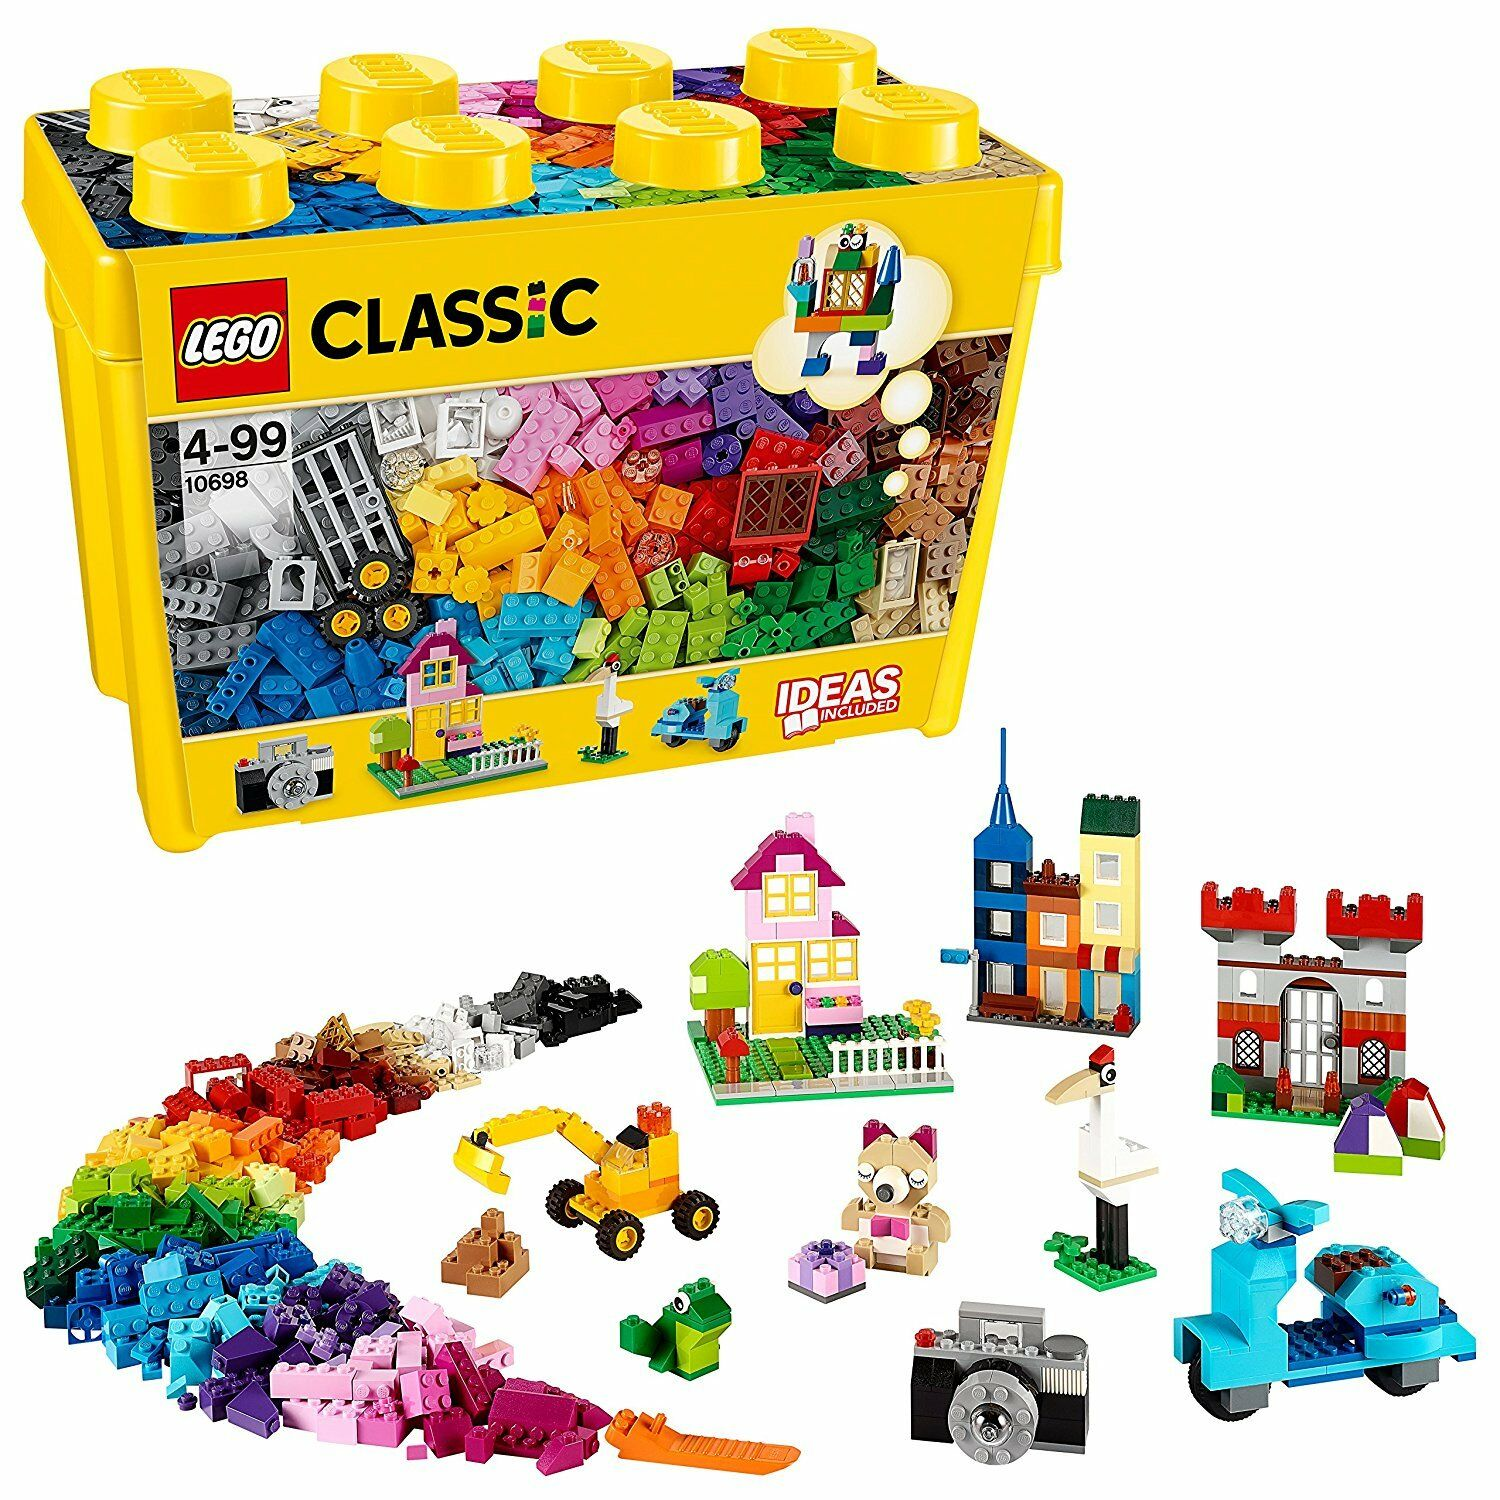 LEGO 10698 Classic Large Creative Box Set Open Ended Imaginative Building Play